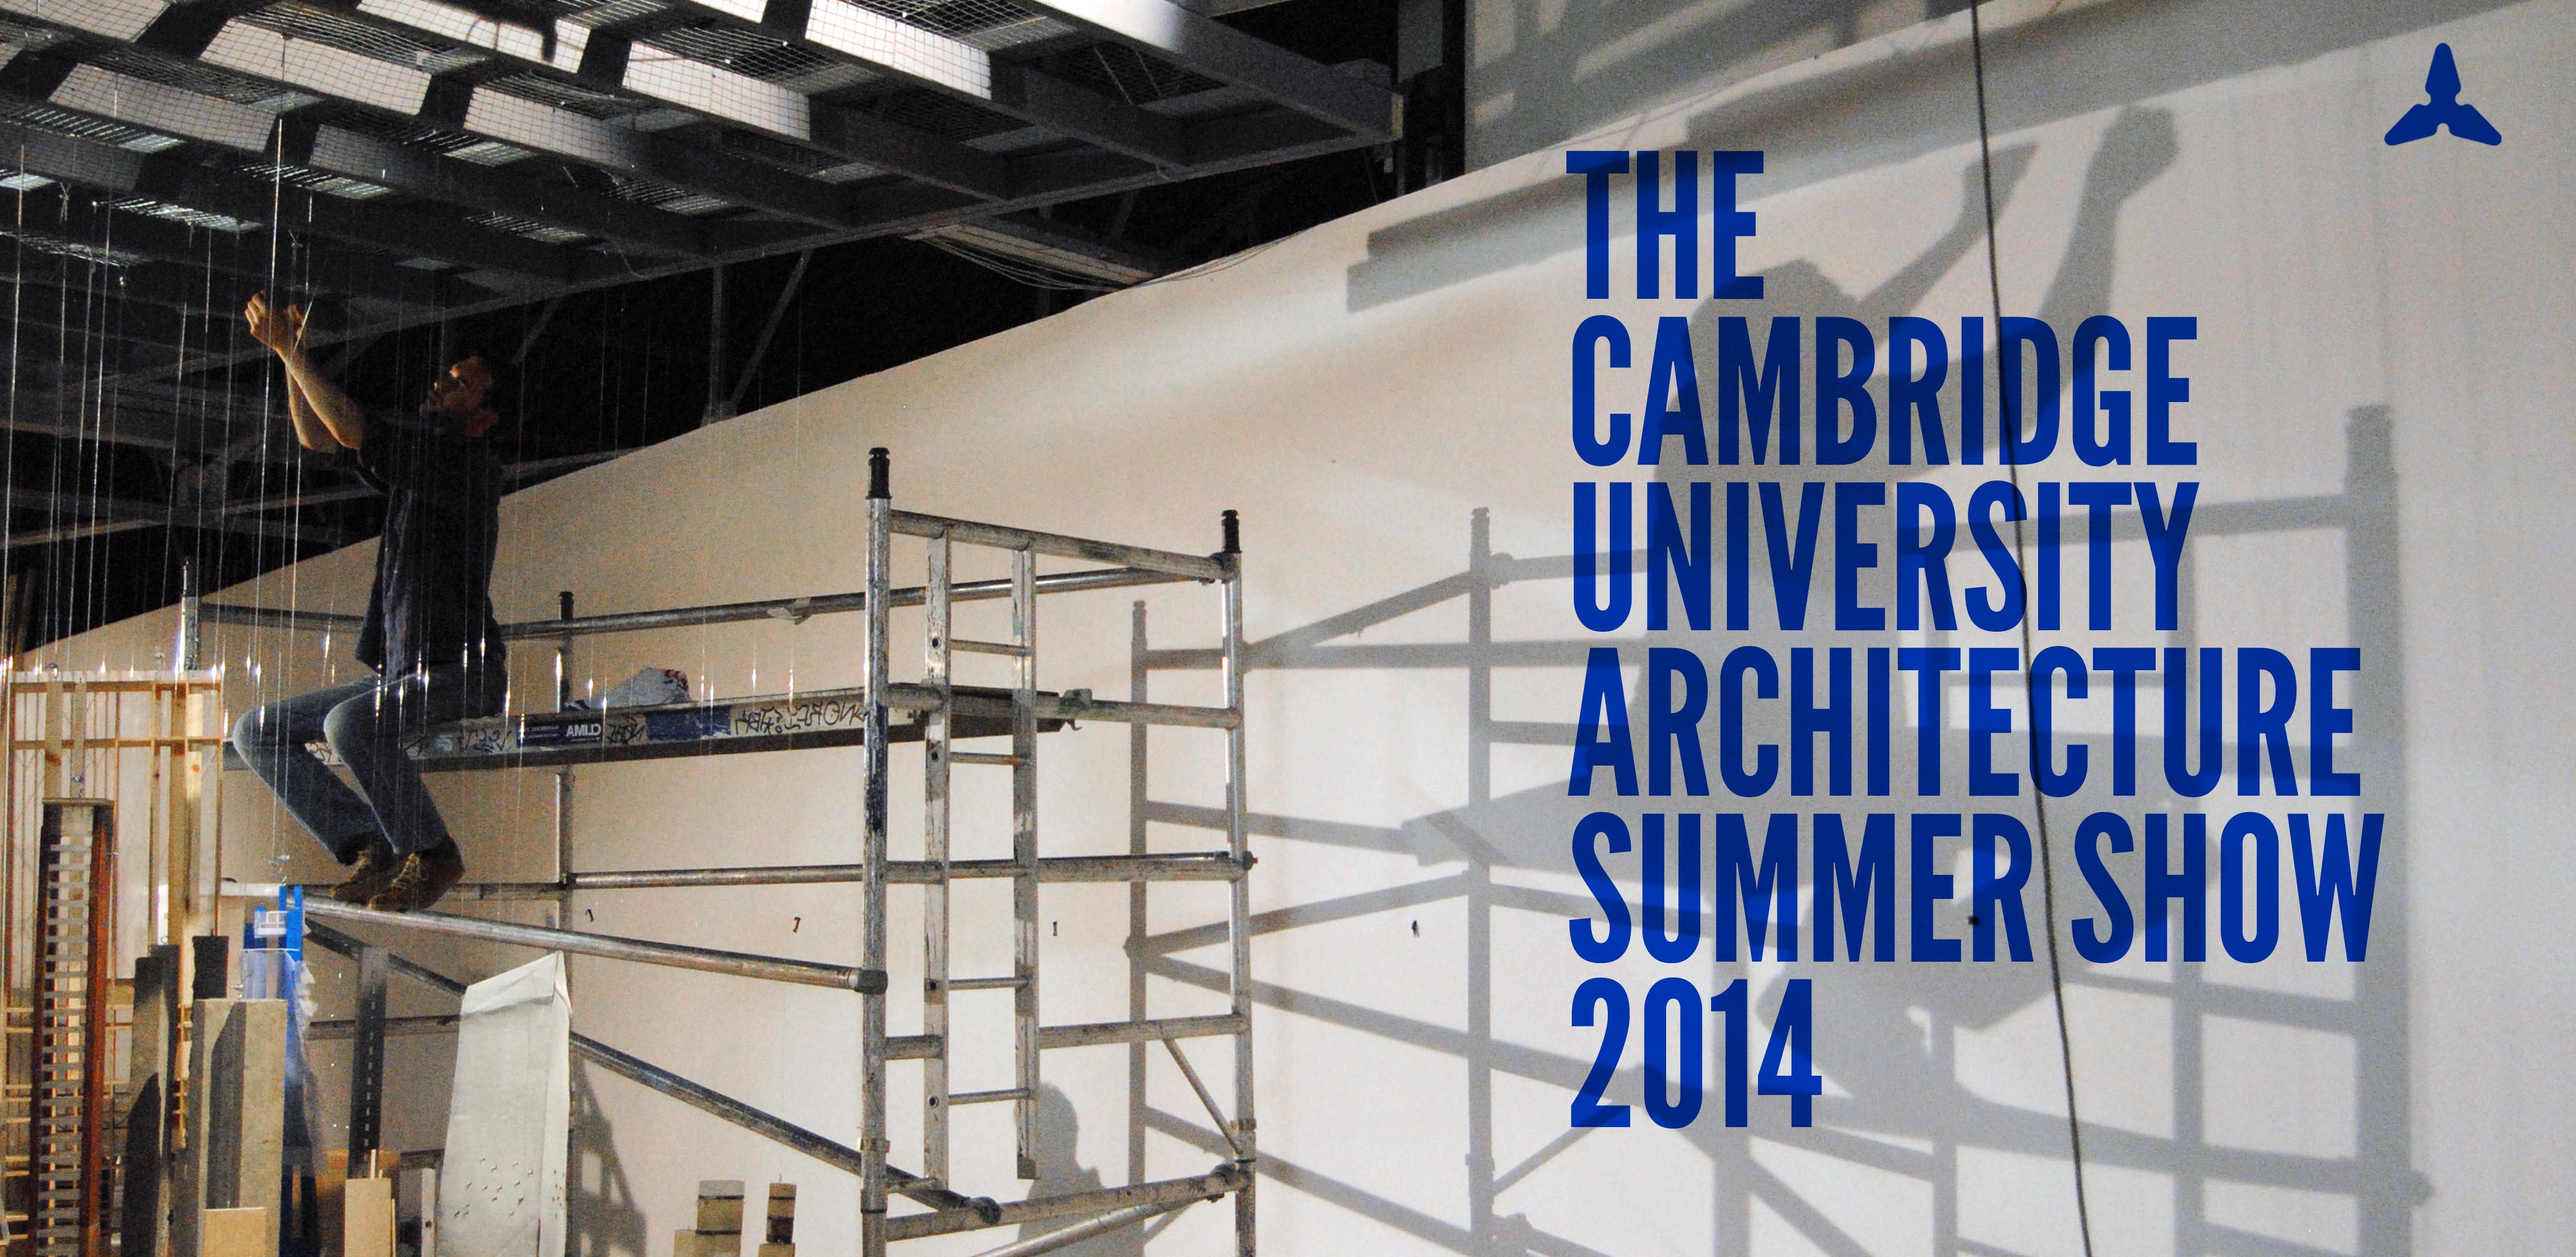 The top architecture school's (Guardian, 2014) Annual Exhibition, London, 11-16 July